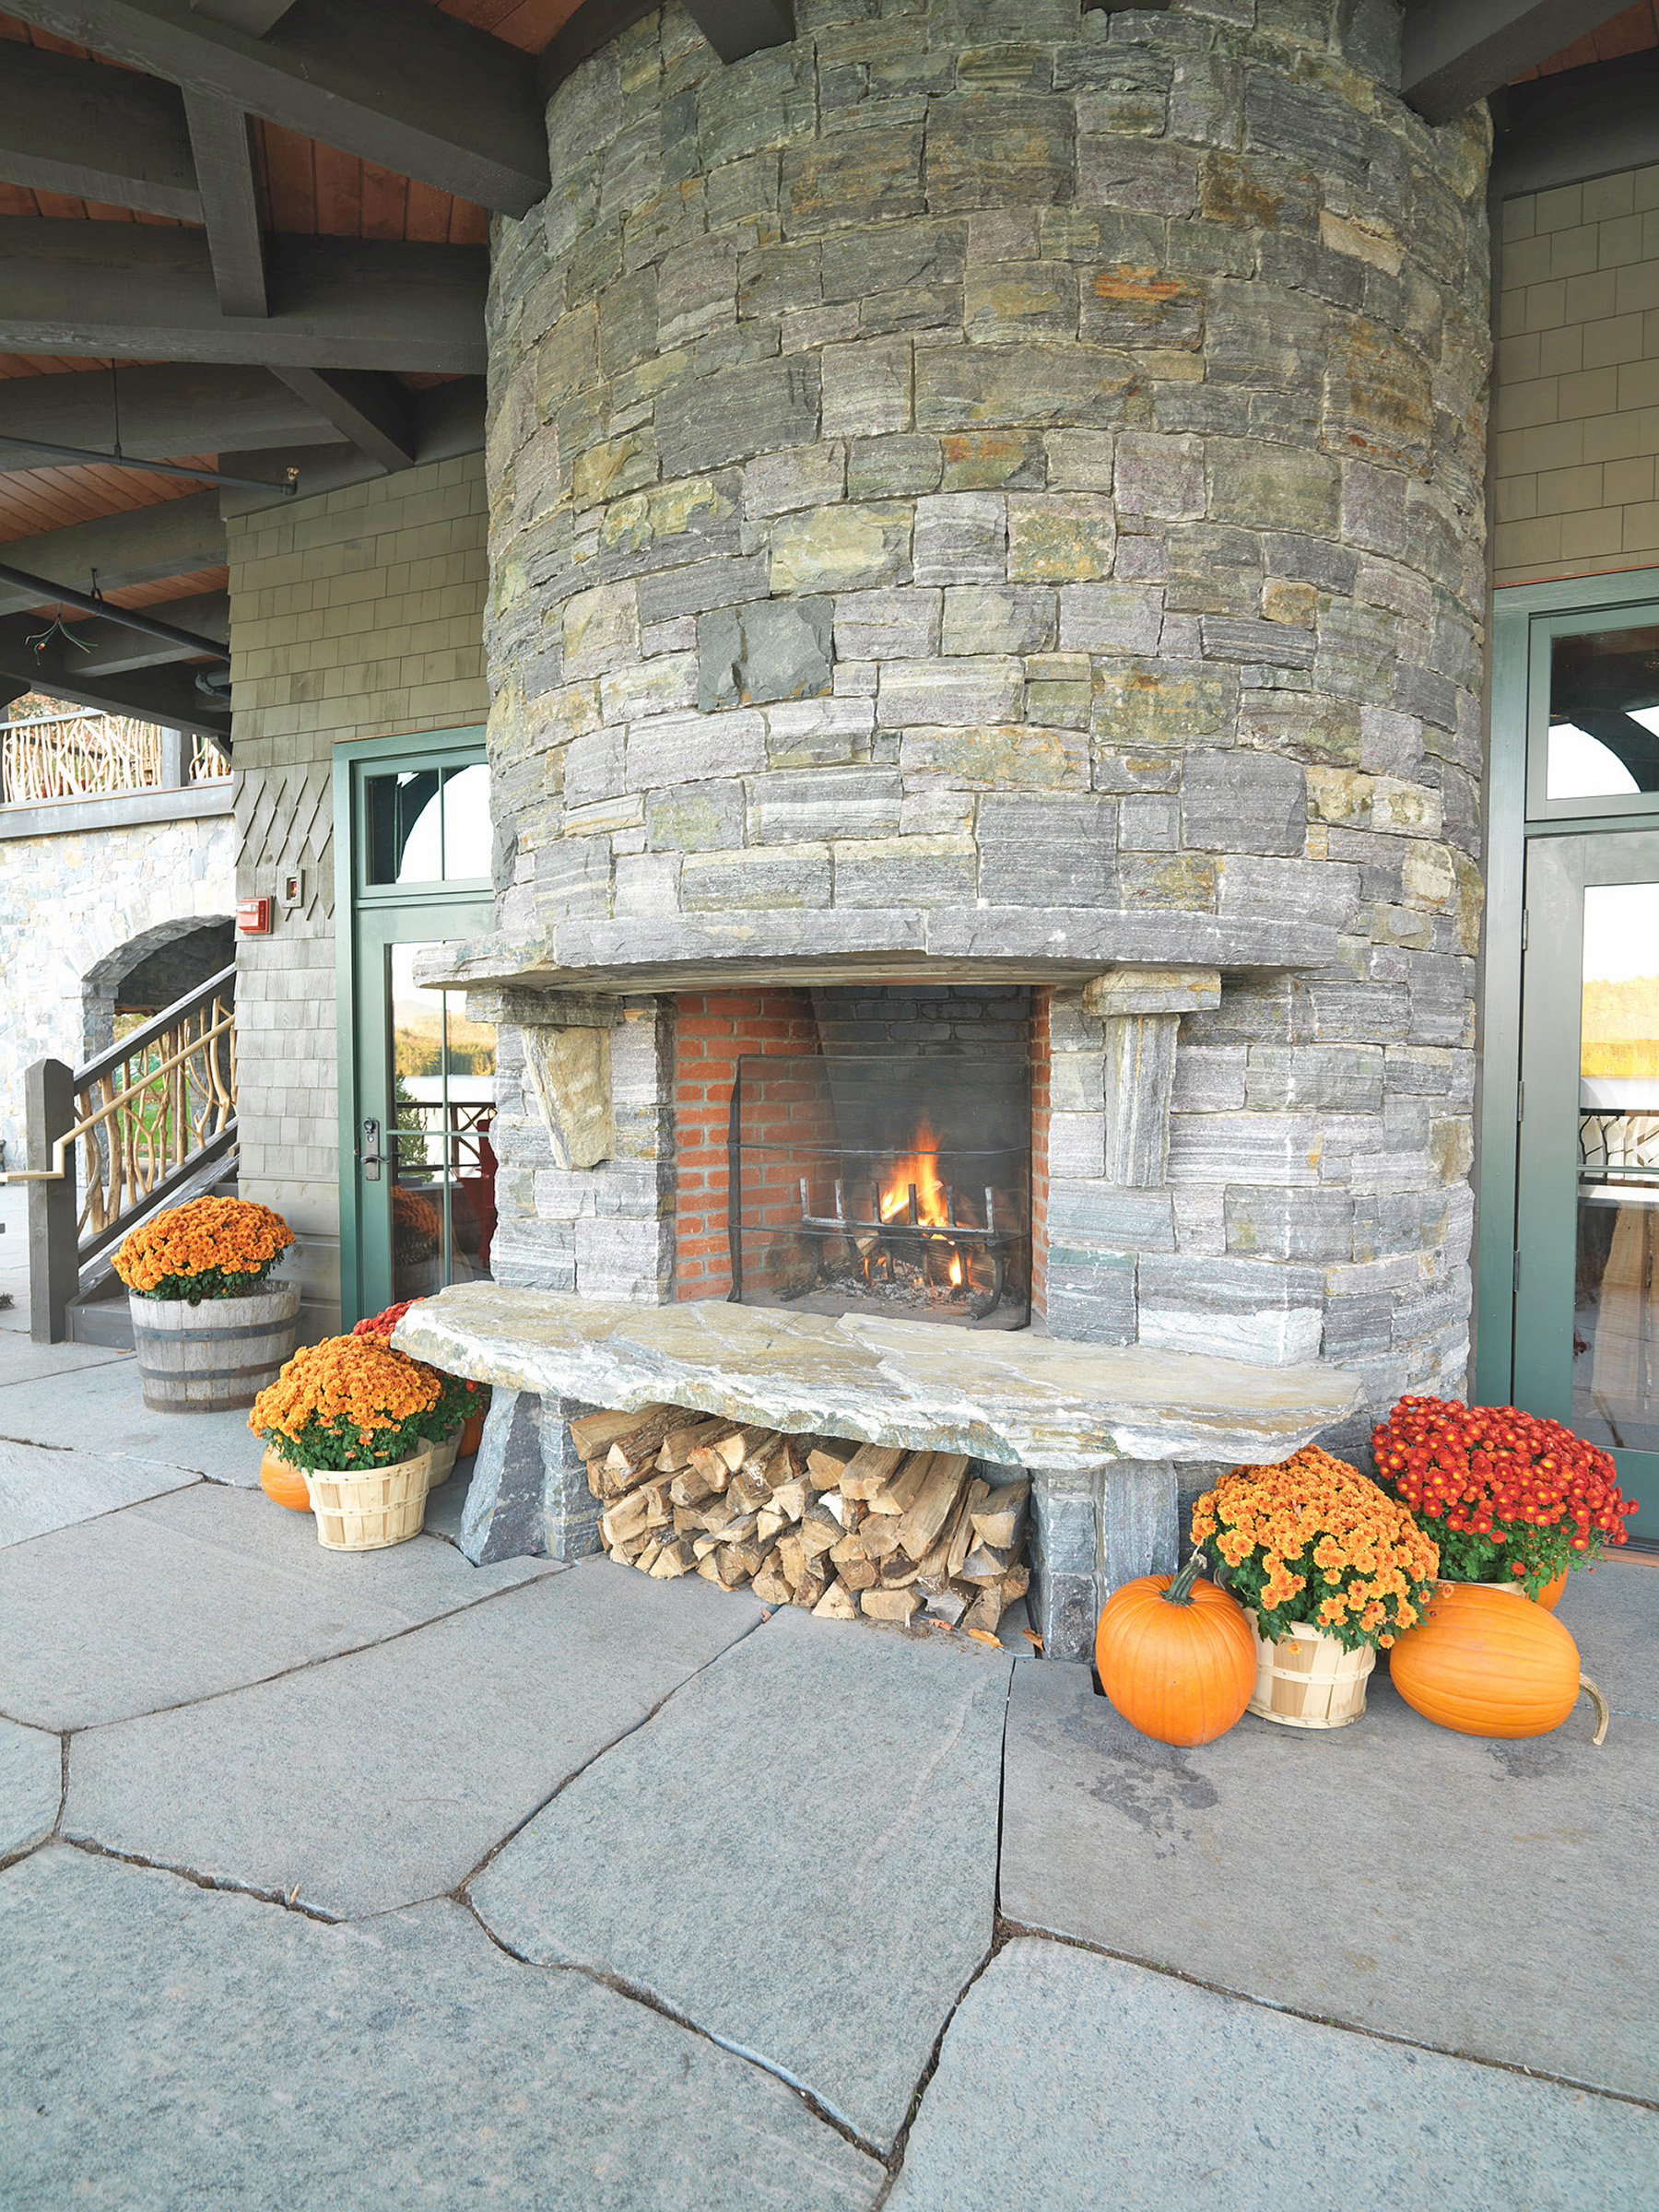 stone fireplace with pumpkins and flowers